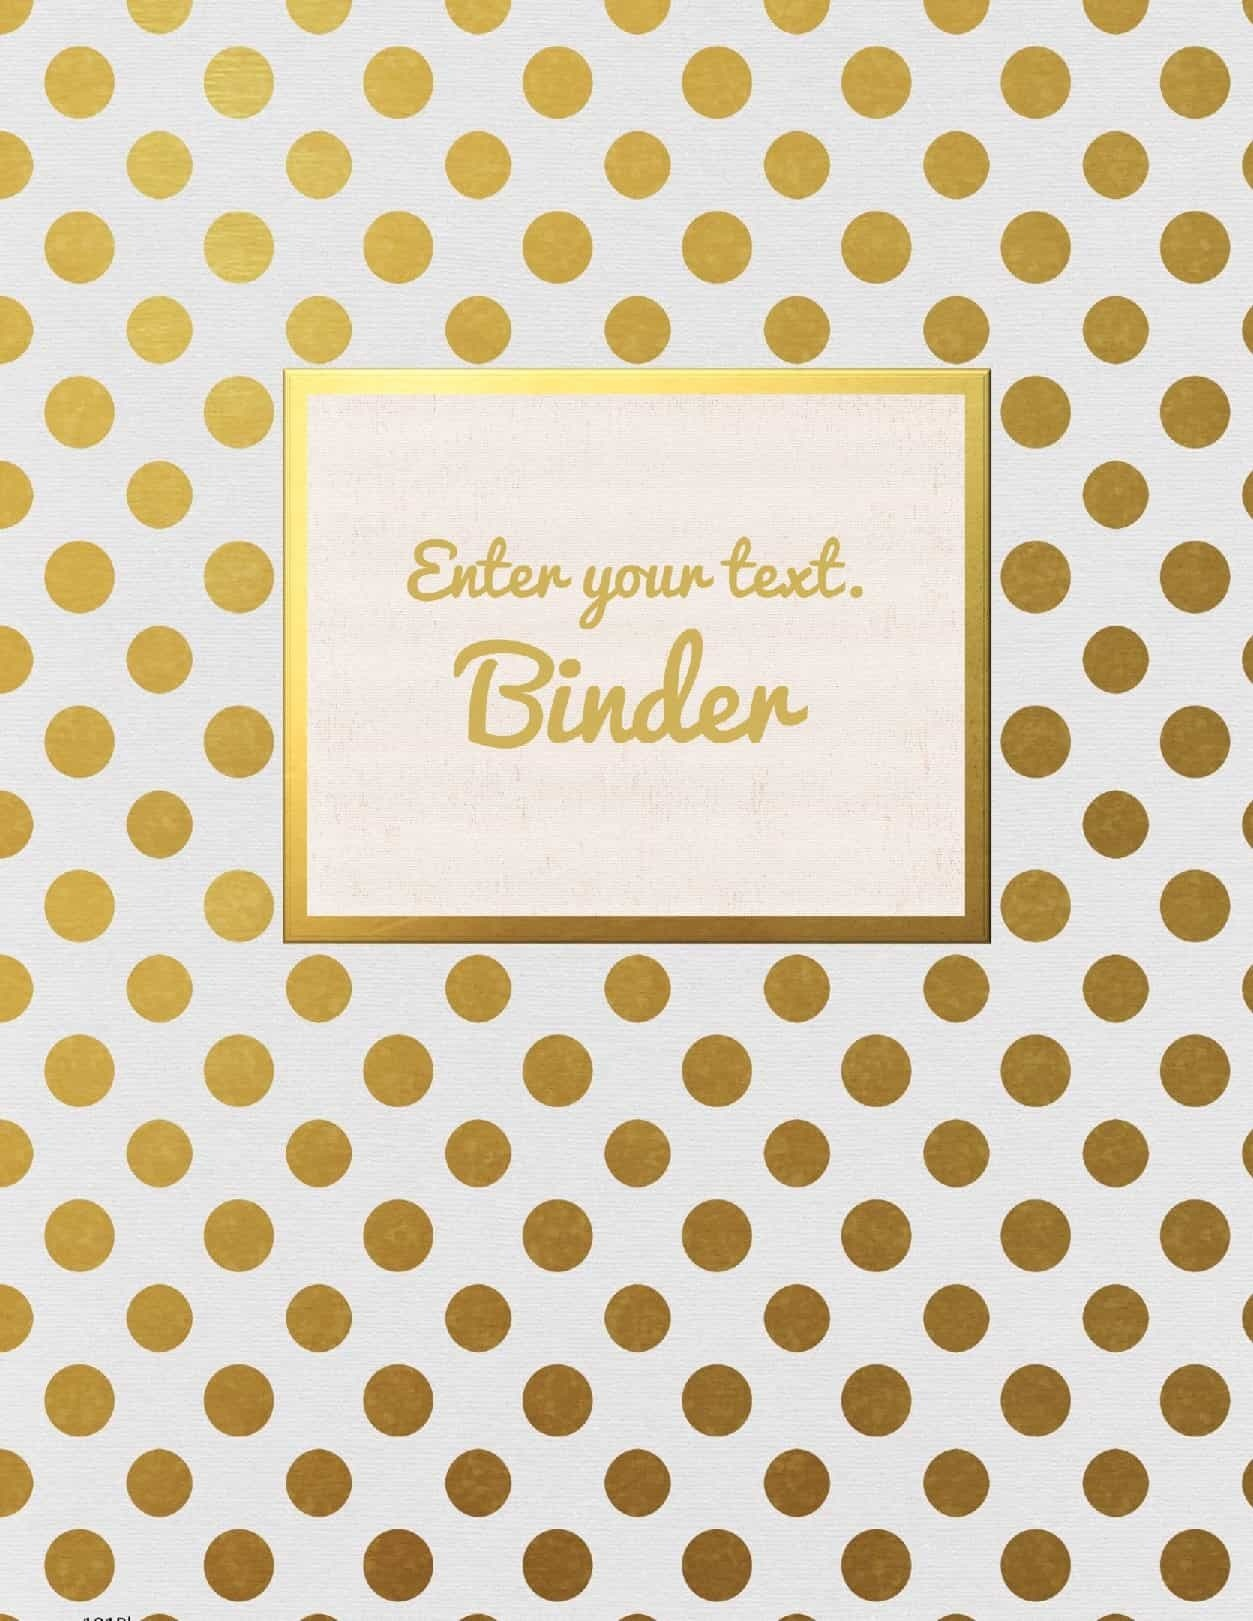 Free Binder Cover Templates | Customize Online & Print At Home | Free! - Cute Free Printable Binder Covers